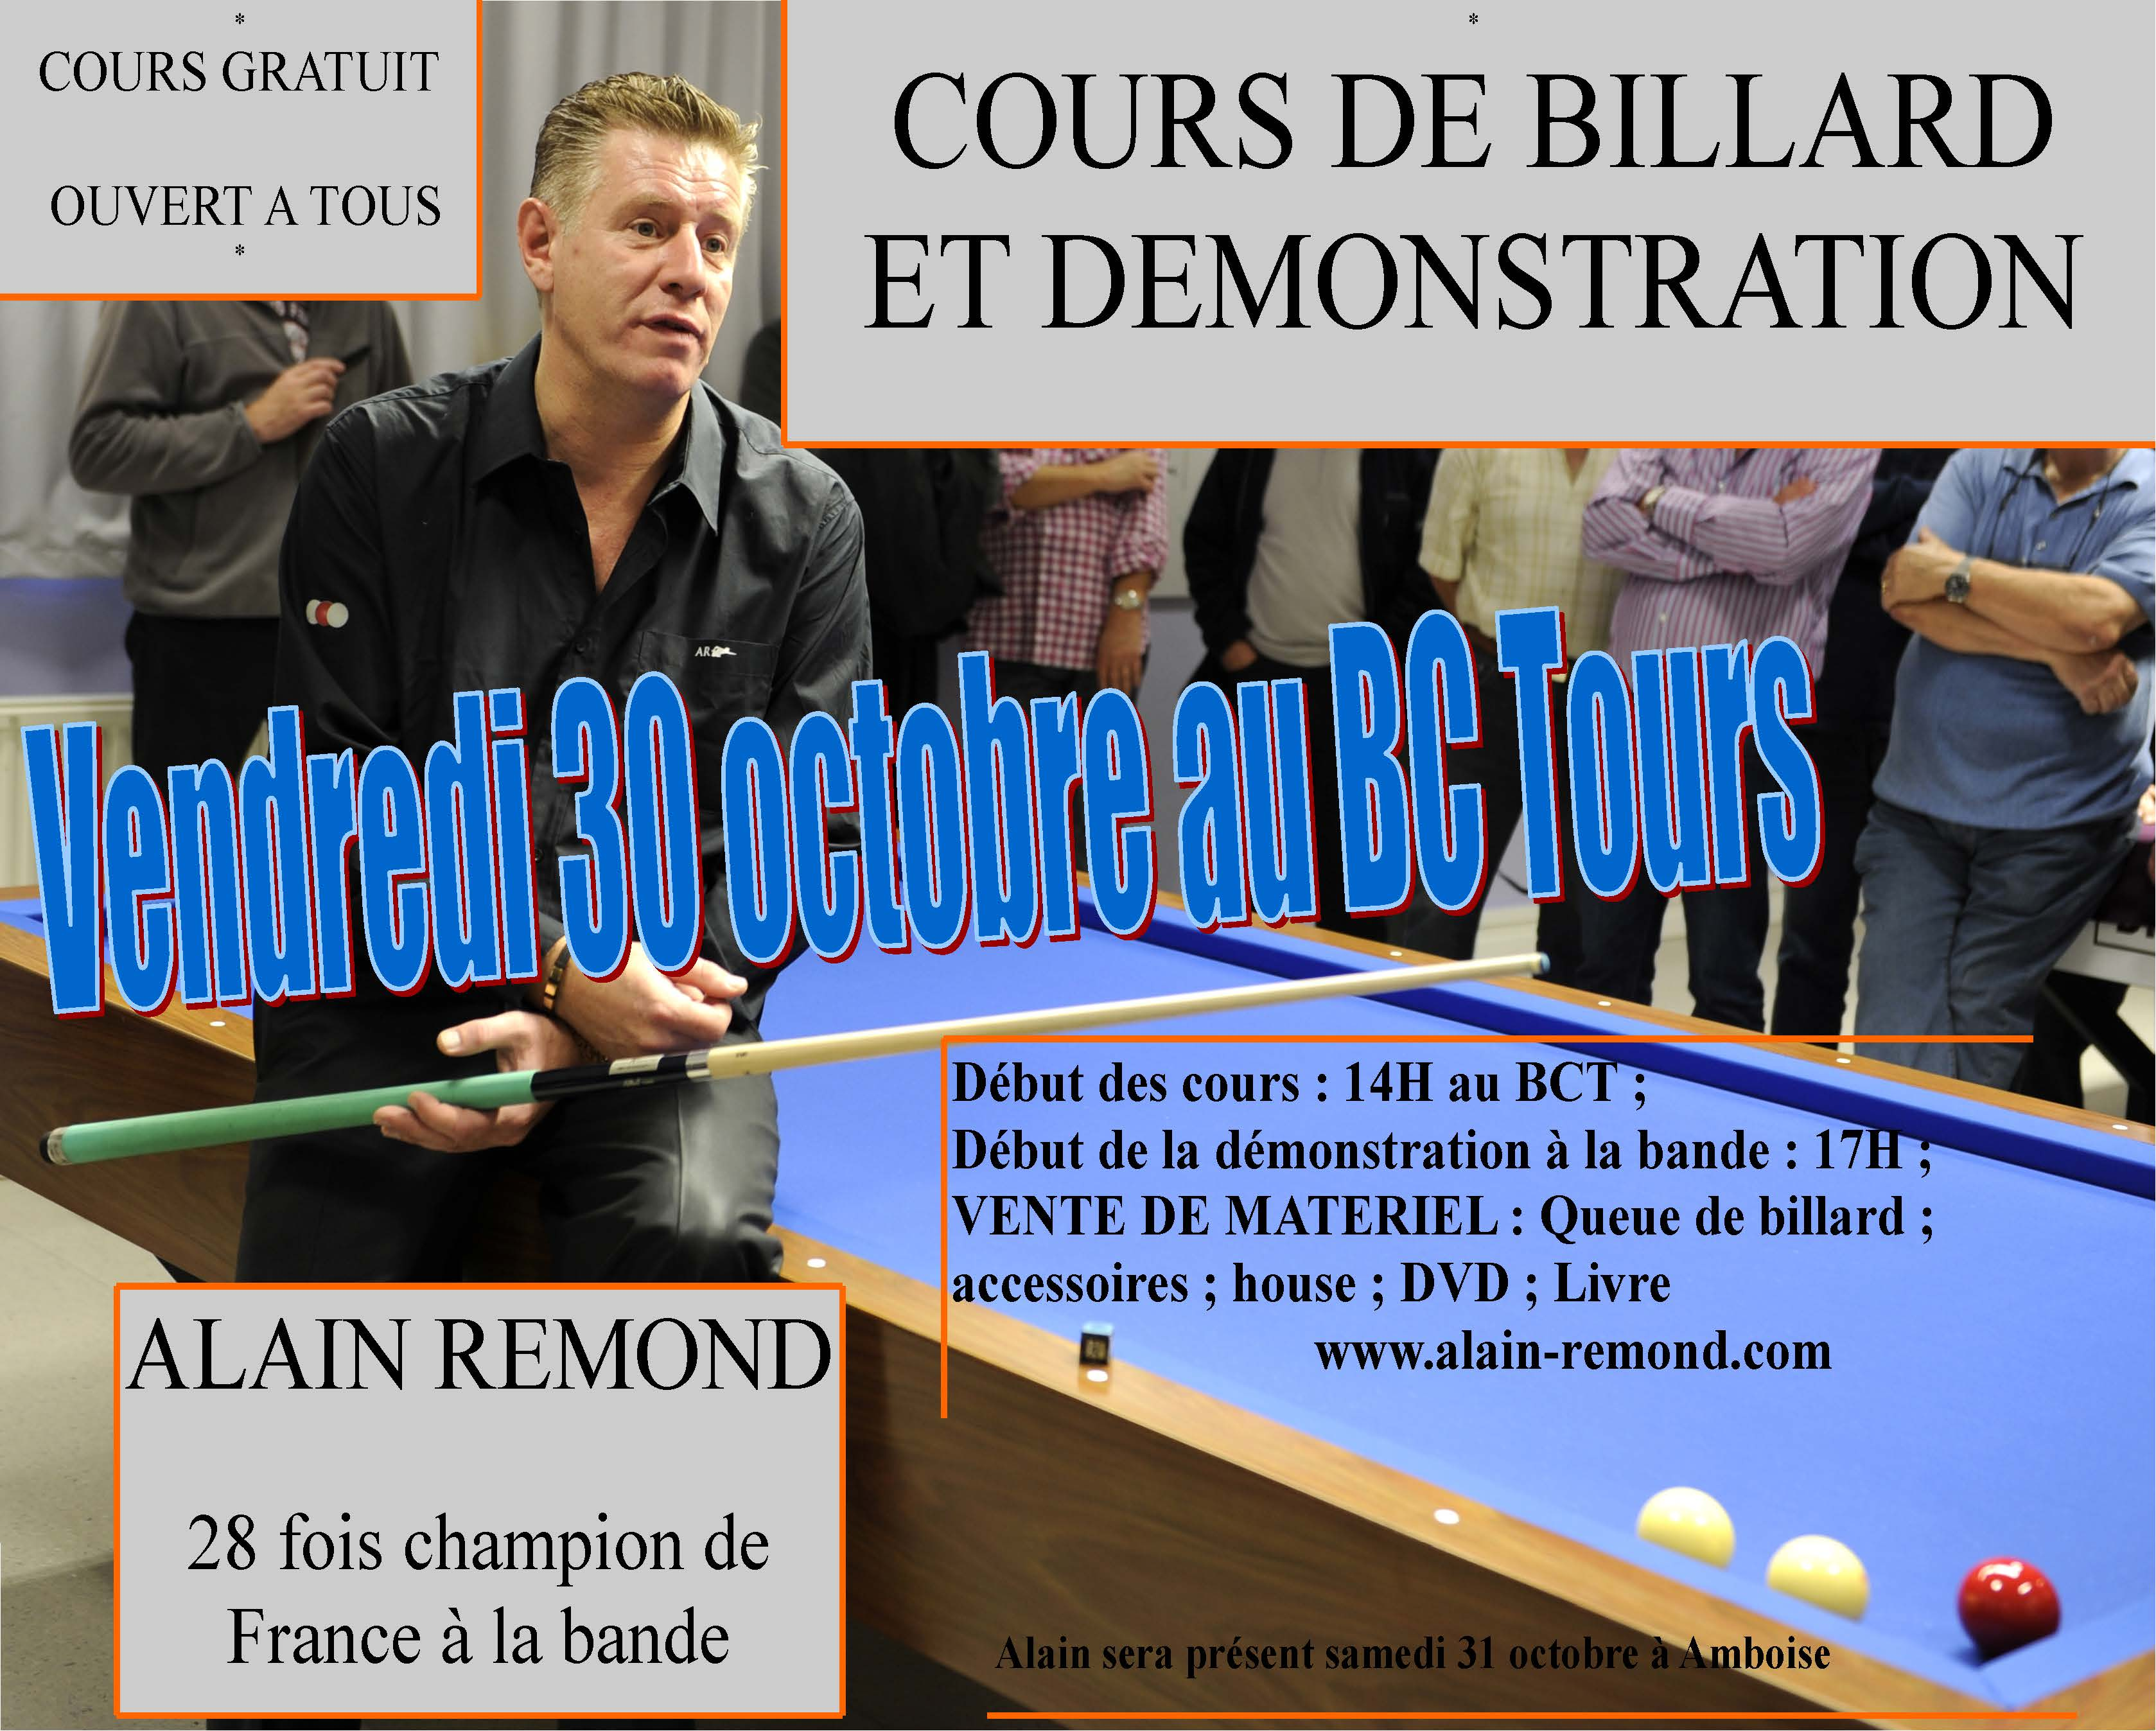 Alain Remond multiple champion de France au BC Tours le 30/10/2015